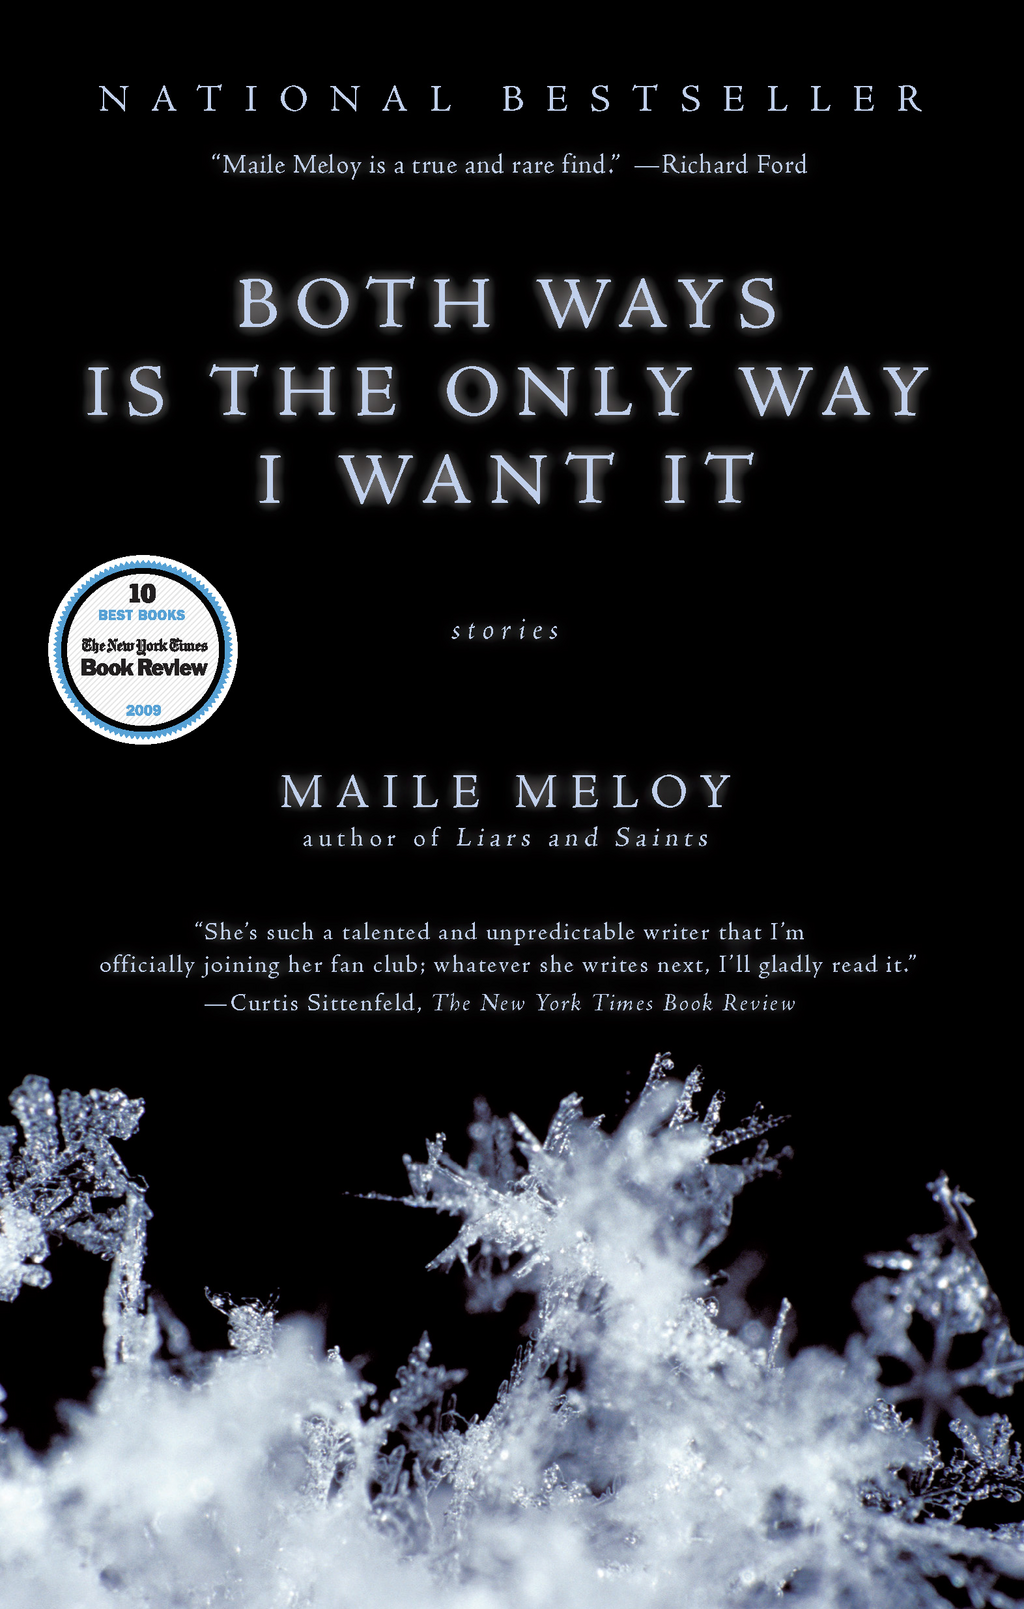 Both Ways is the Only Way I Want It By: Maile Meloy